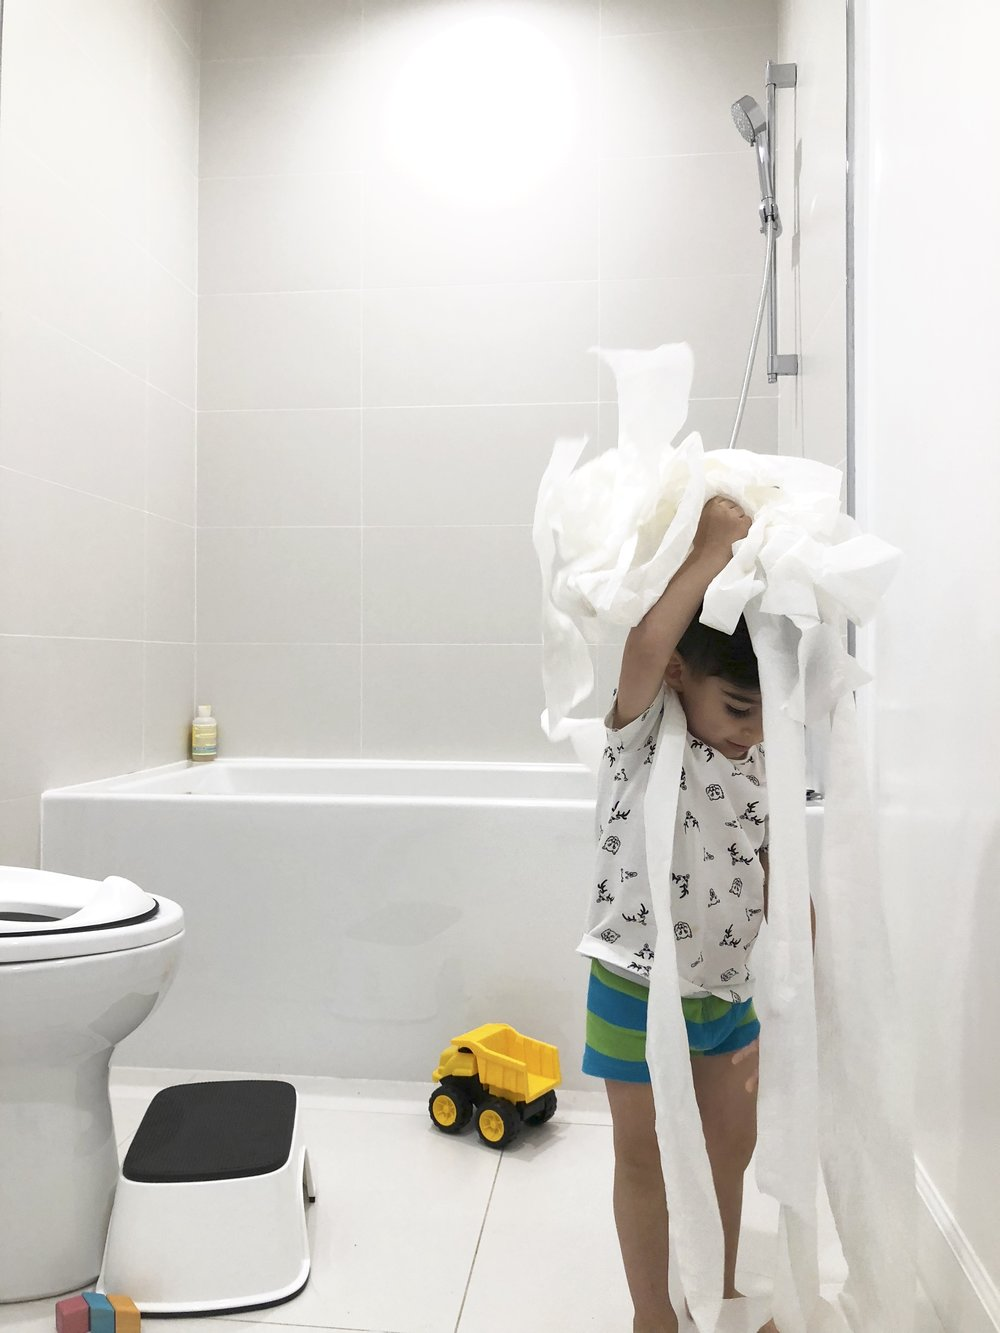 Potty Training Ryan-10.jpg